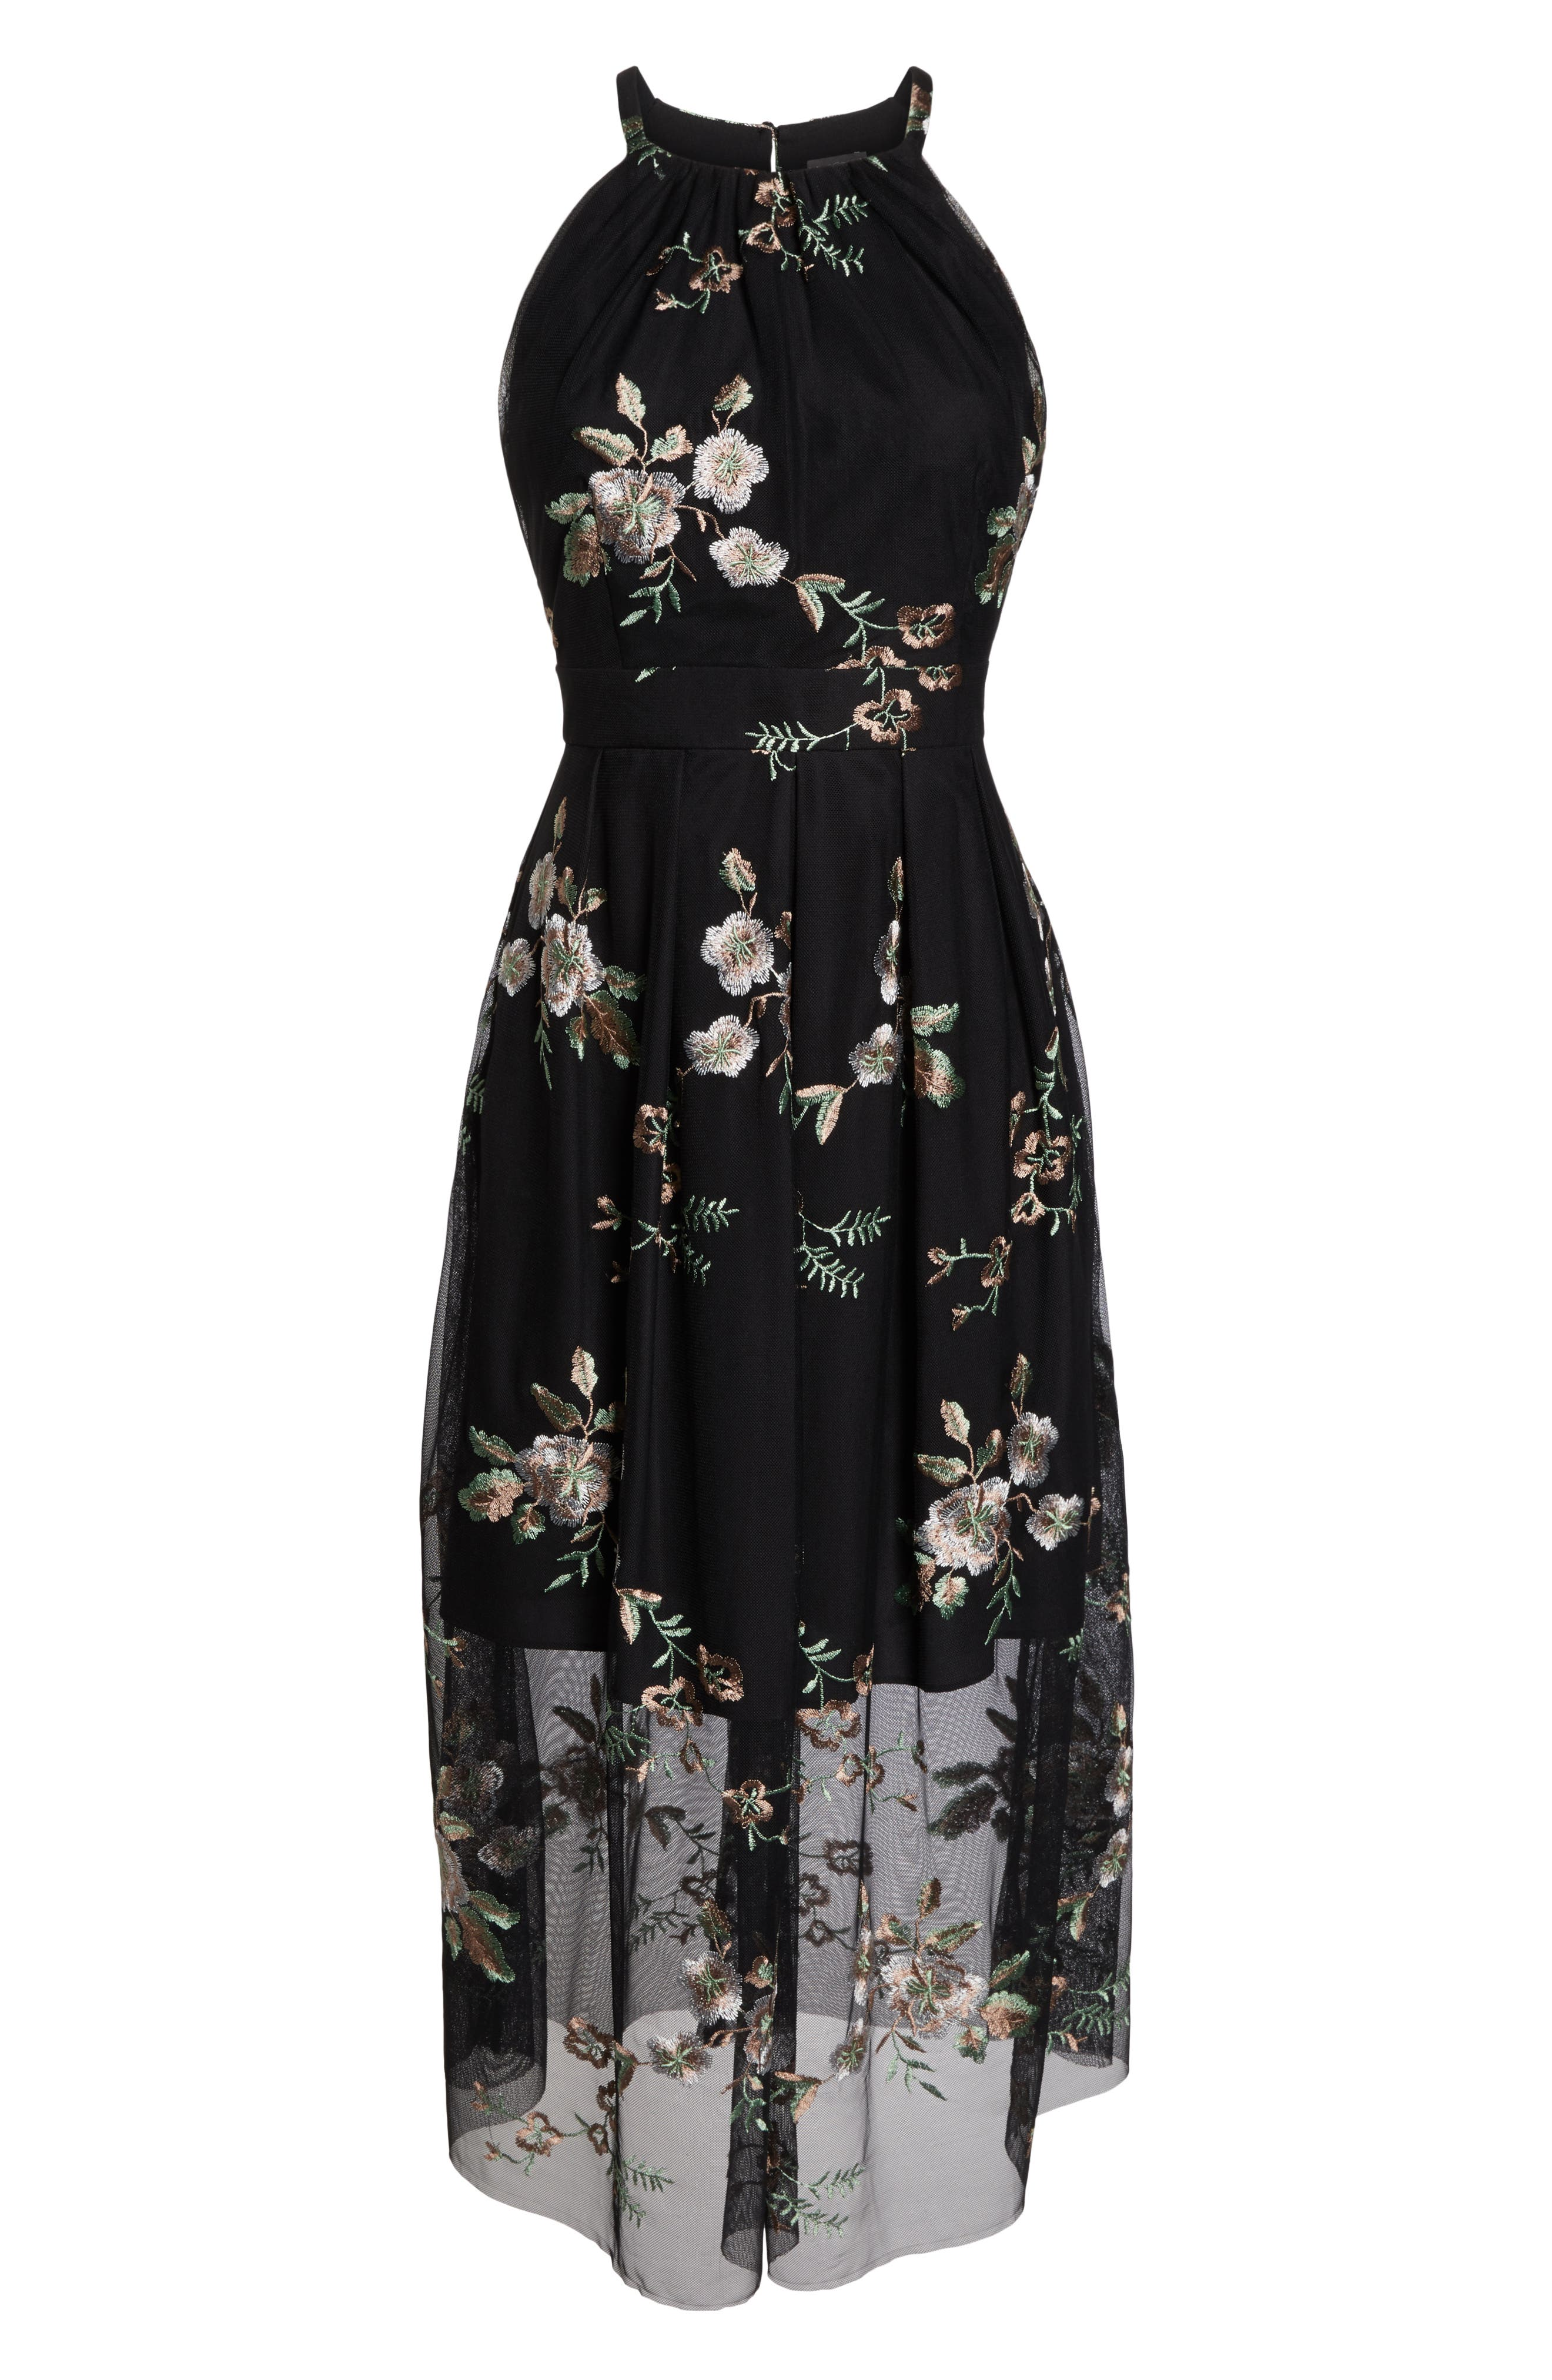 VINCE CAMUTO, Embroidered Mesh Midi Dress, Alternate thumbnail 7, color, 019